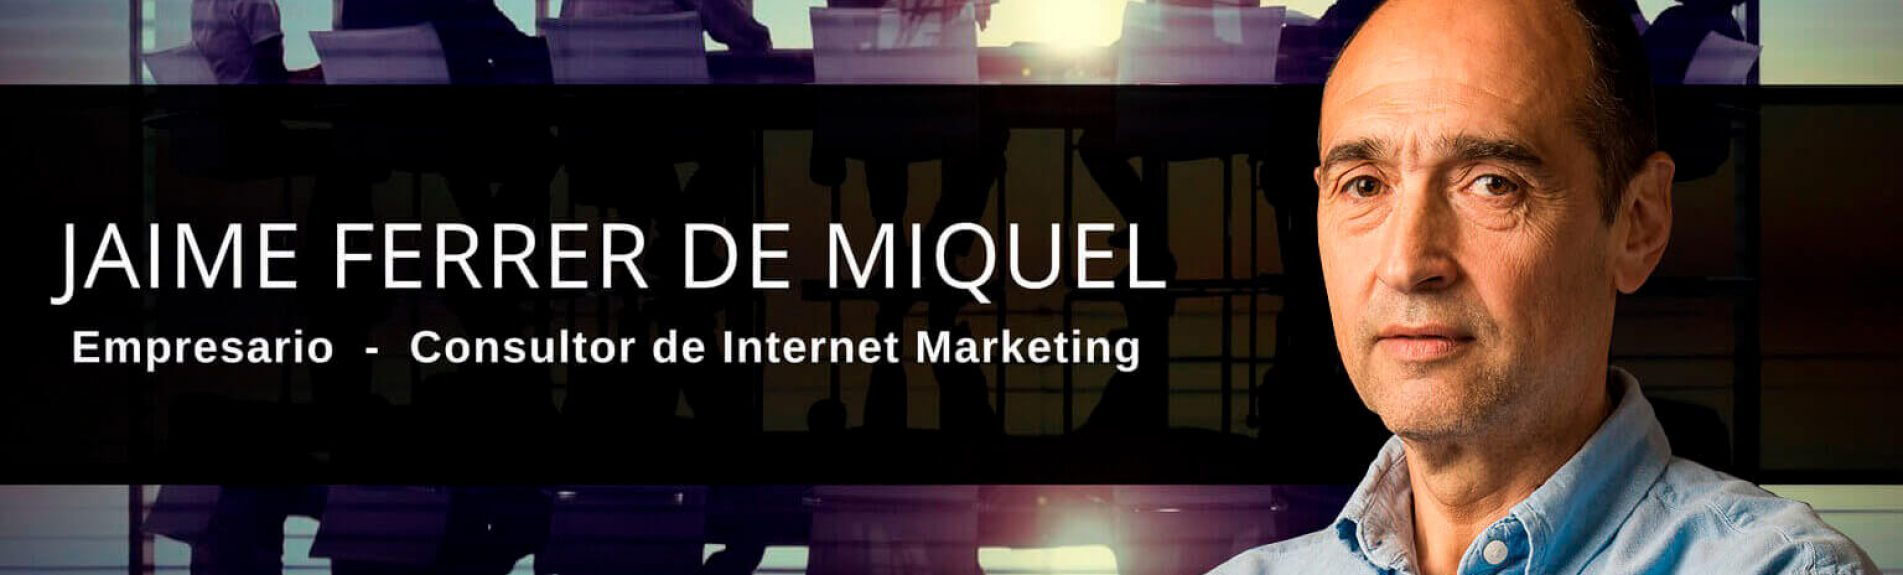 consultor-internet-marketing